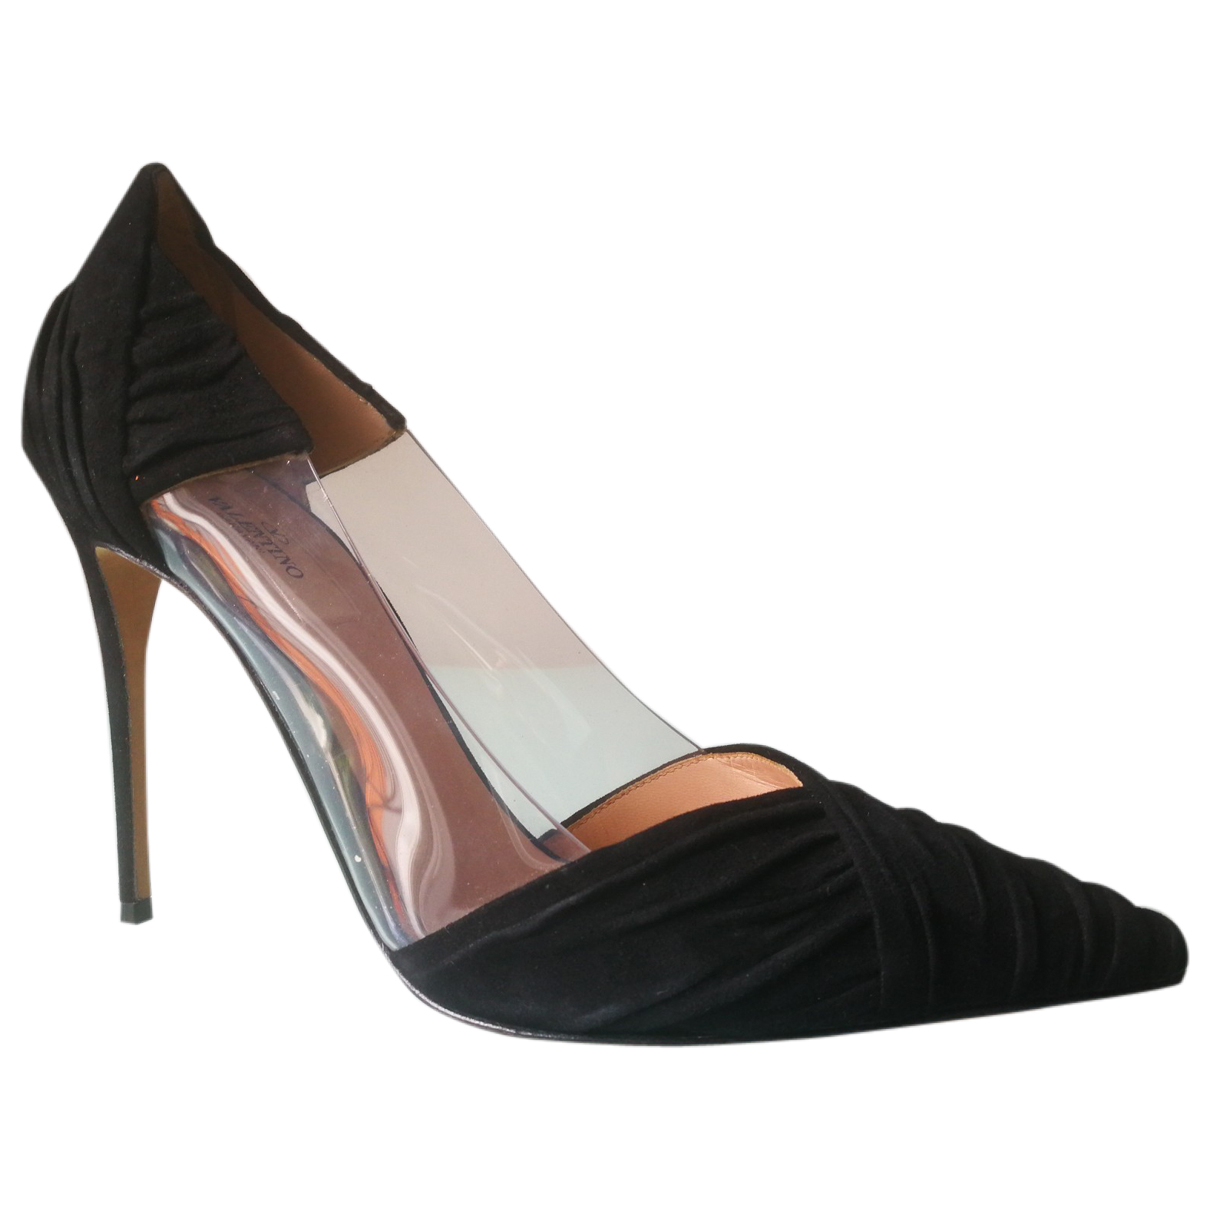 Valentino Garavani \N Black Velvet Heels for Women 37.5 EU